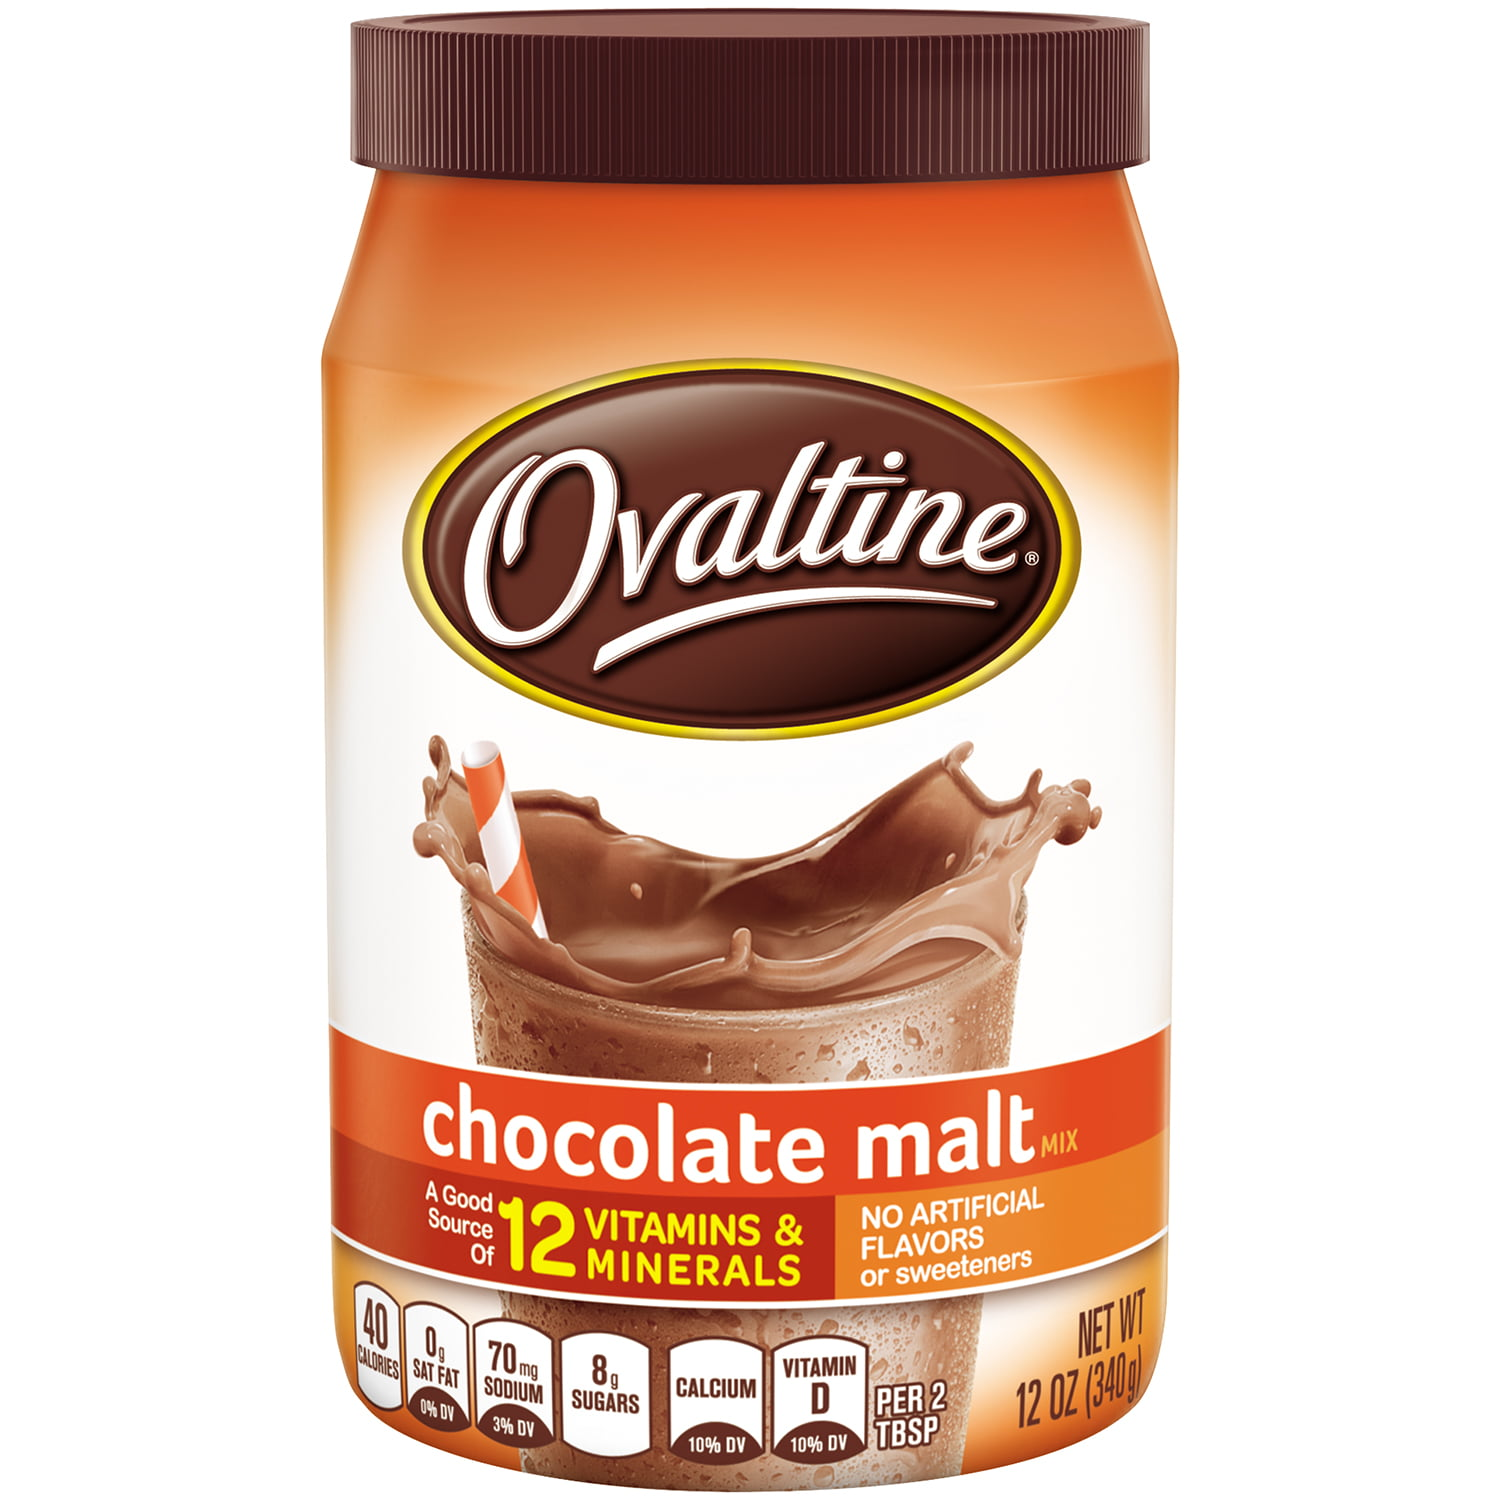 OVALTINE Chocolate Malt Flavored Milk Mix 12 oz. Canister ...